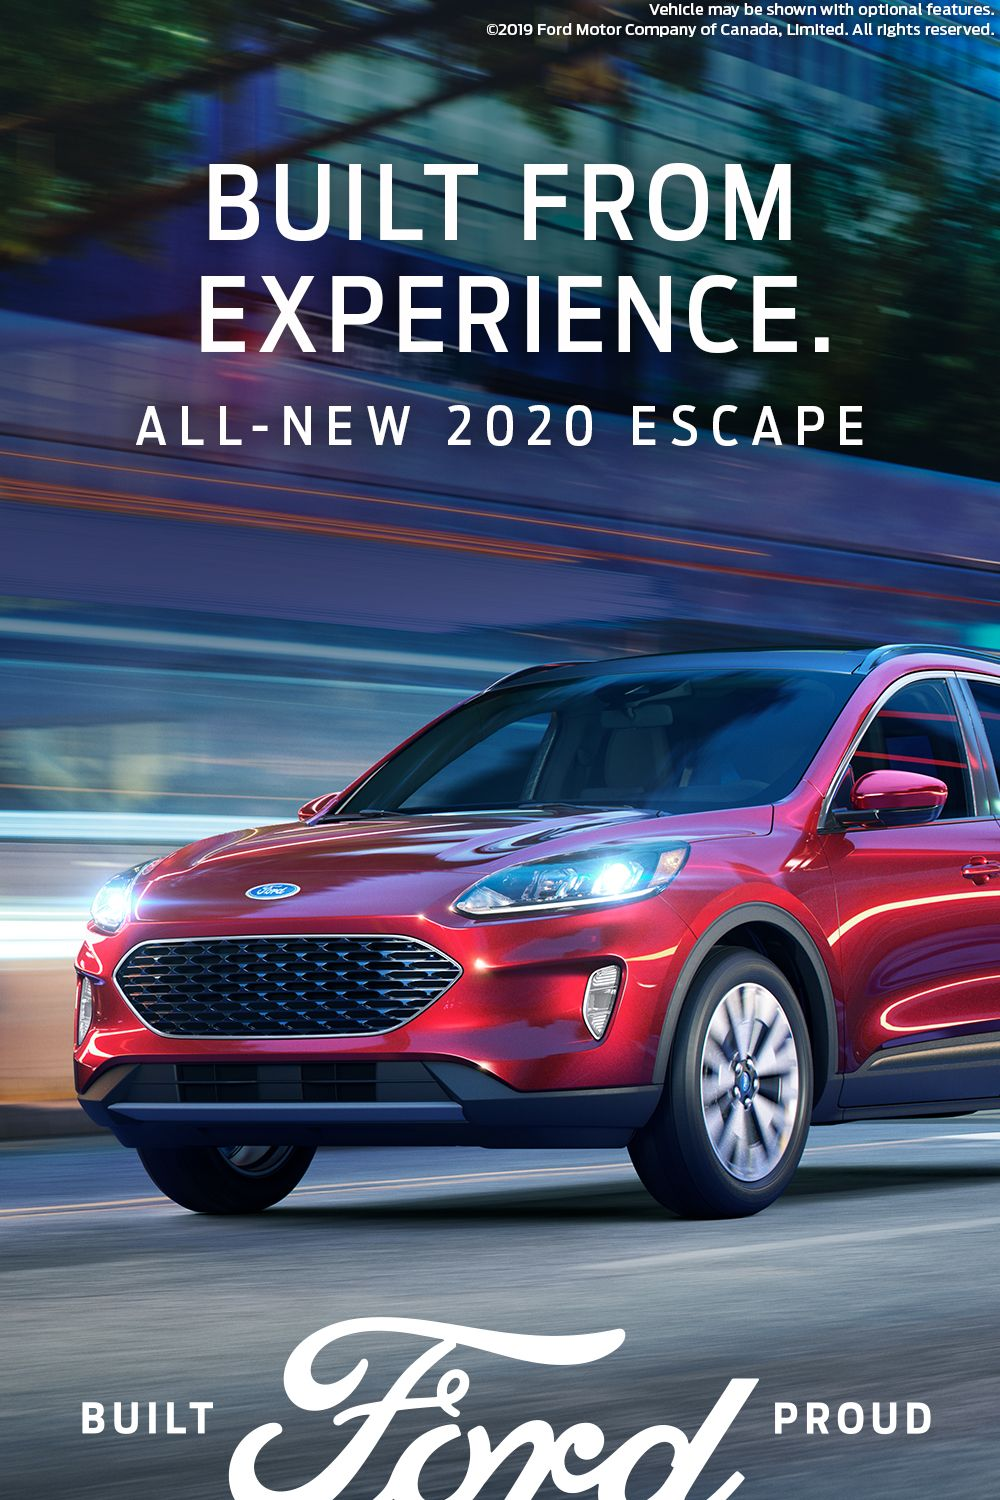 Feel More Confident In The All New 2020 Ford Escape In 2020 Ford Escape Bmw Classic Cars Ford